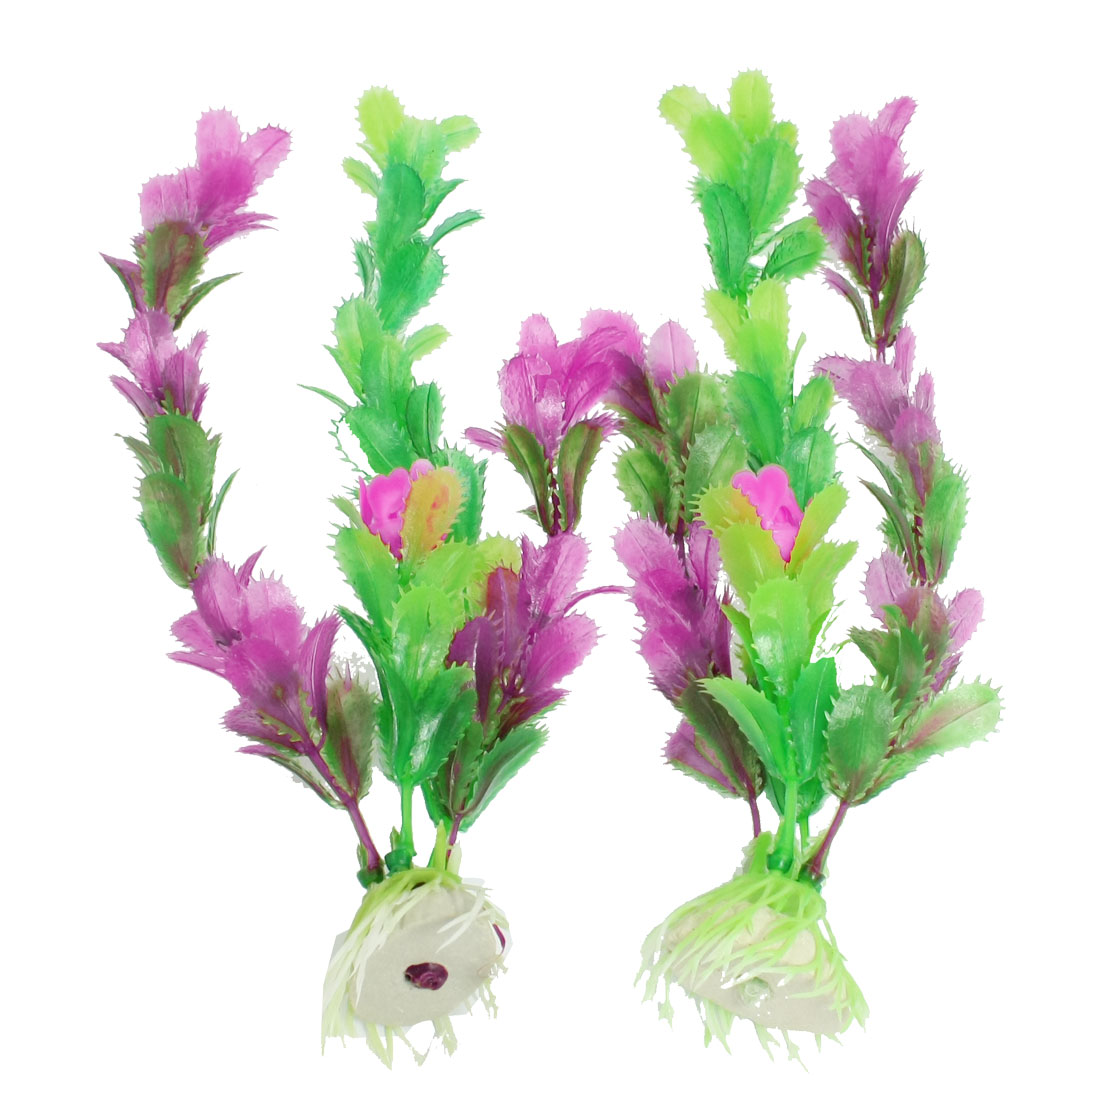 2 Pcs Aquarium Fish Tank Aquatic Grass Plant Fuchsia Green 7.1""